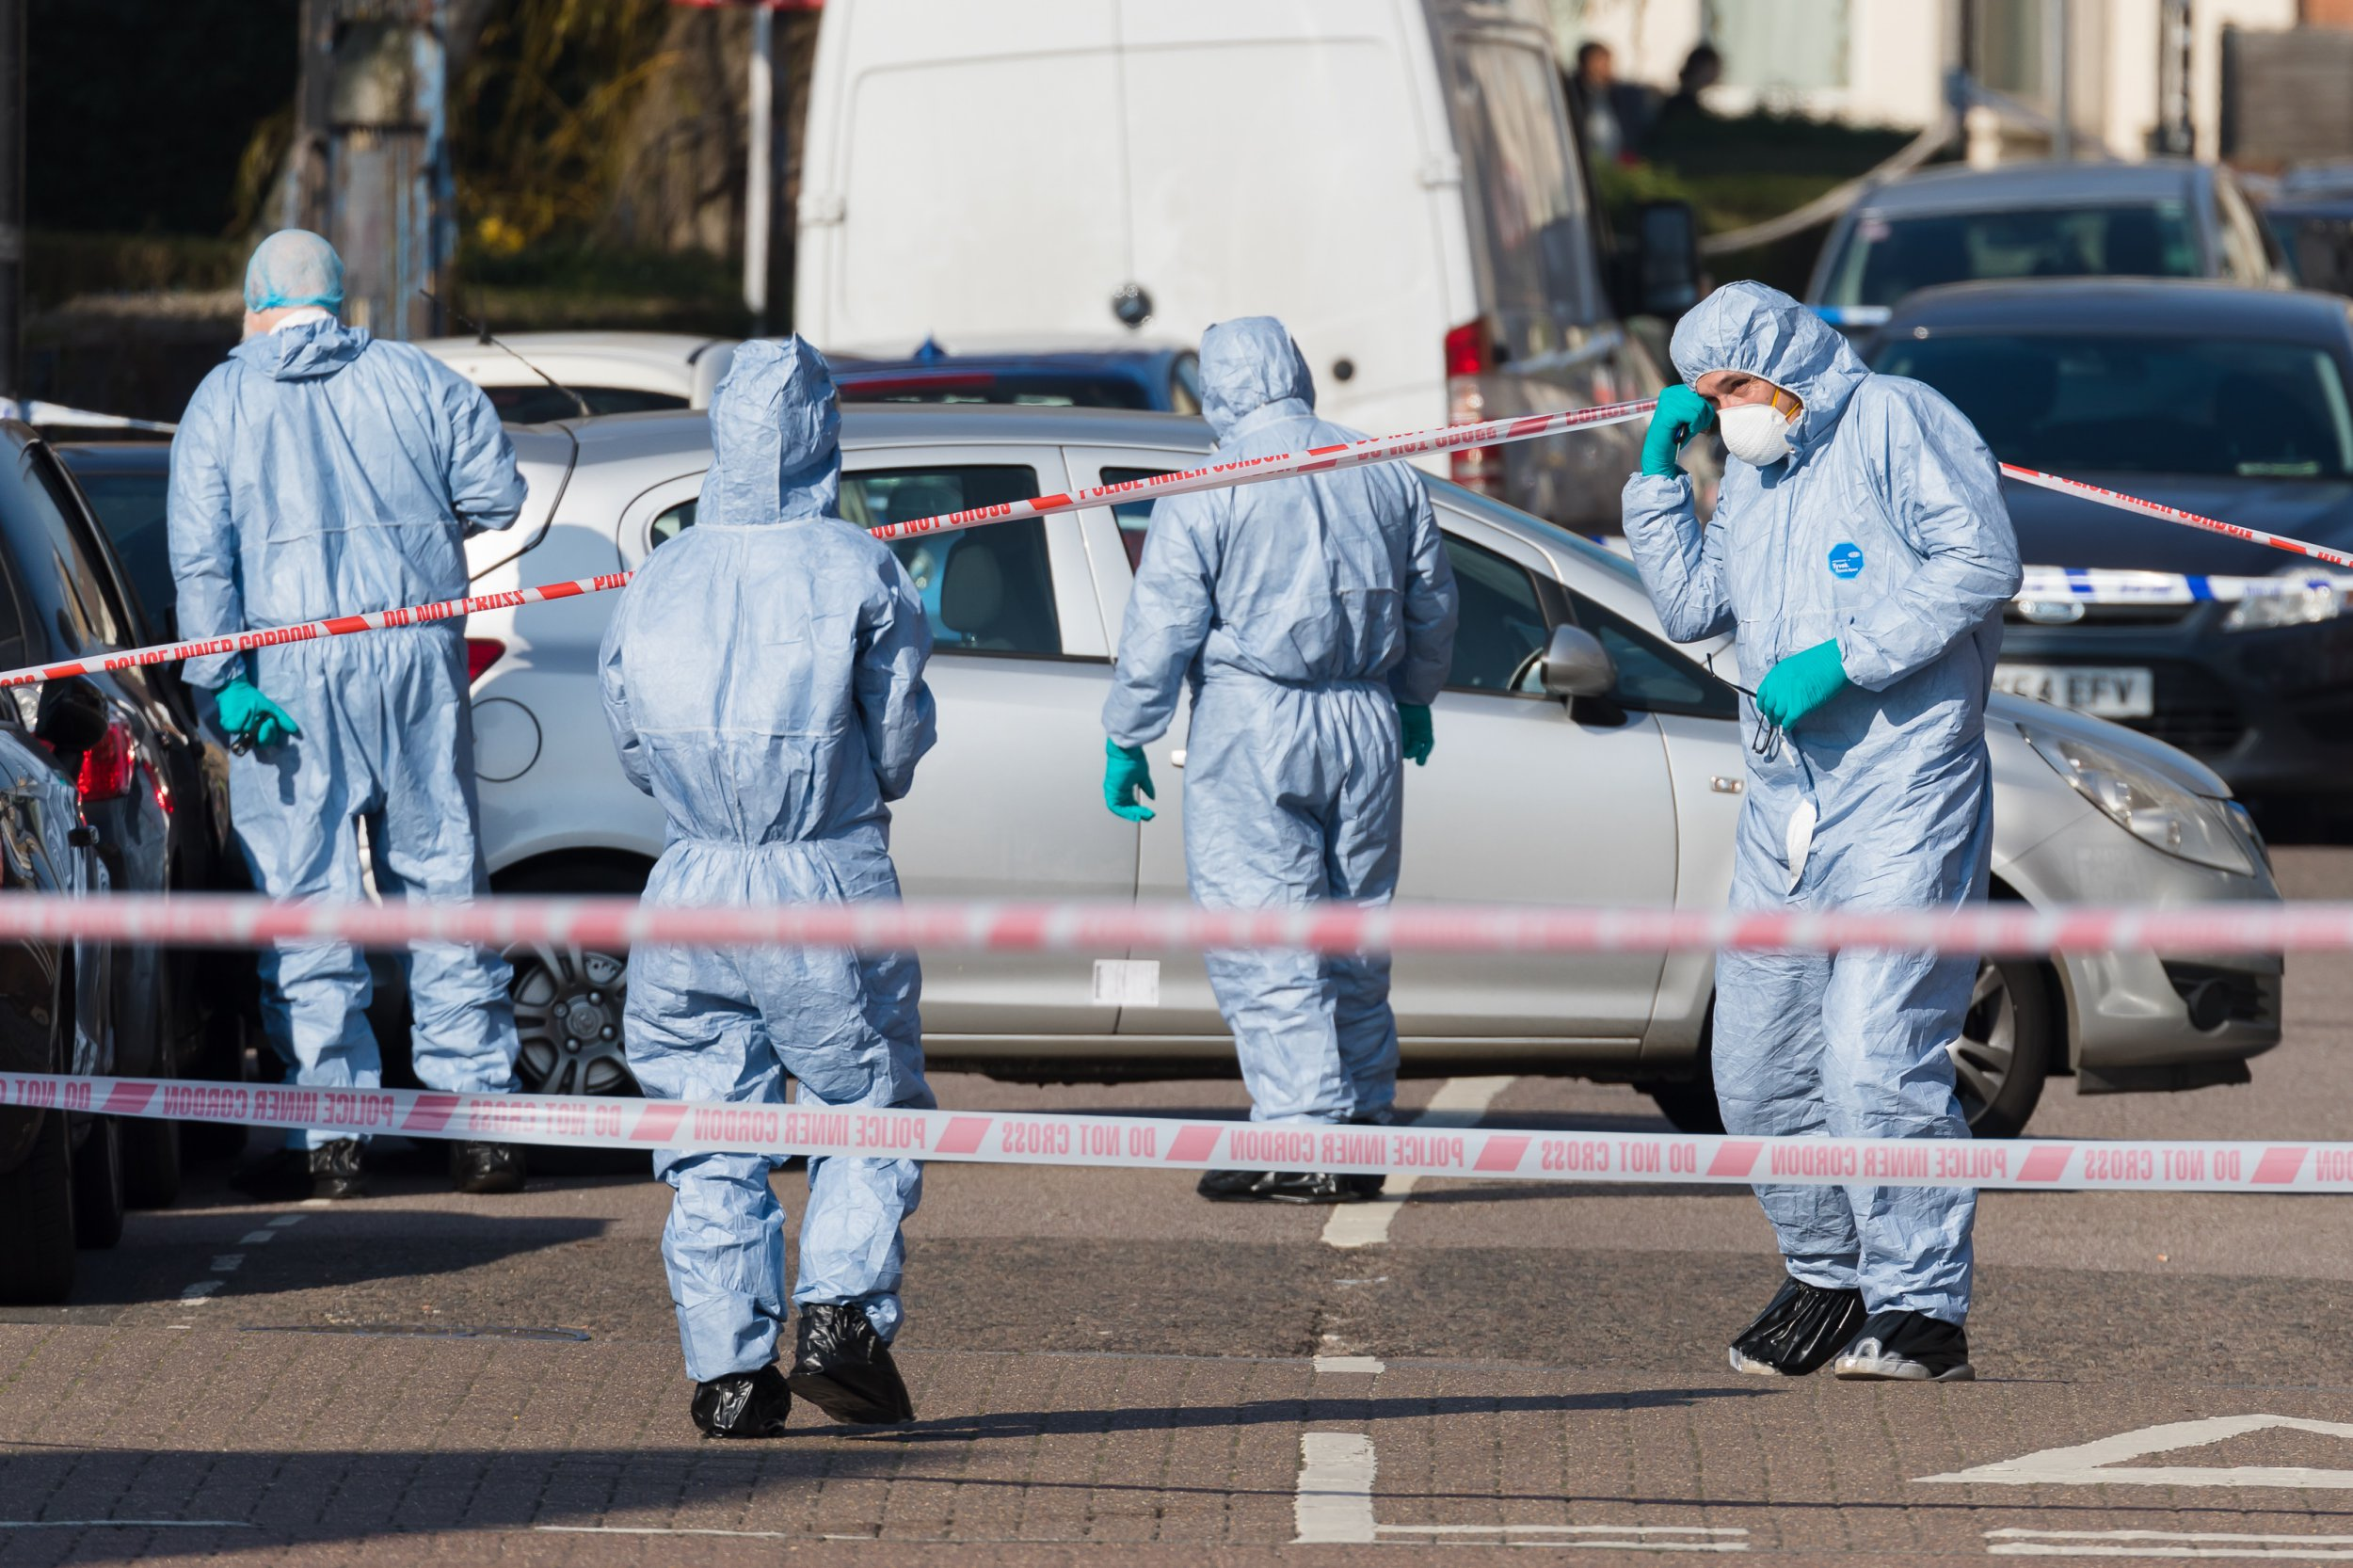 ? Licensed to London News Pictures. 23/02/2019. London, UK. Forensic officers investigating the crime scene at Vincent Road, Wood Green in Haringey. Police were called to Vincent Road last night to reports of a group of people fighting, where two men believed to be aged 19 and 20 were found with stab injuries. The injured men were taken to hospital and the 19 year old who was also found to have suffered gun shot wounds was pronounced dead shortly after 3am. Photo credit: Vickie Flores/LNP